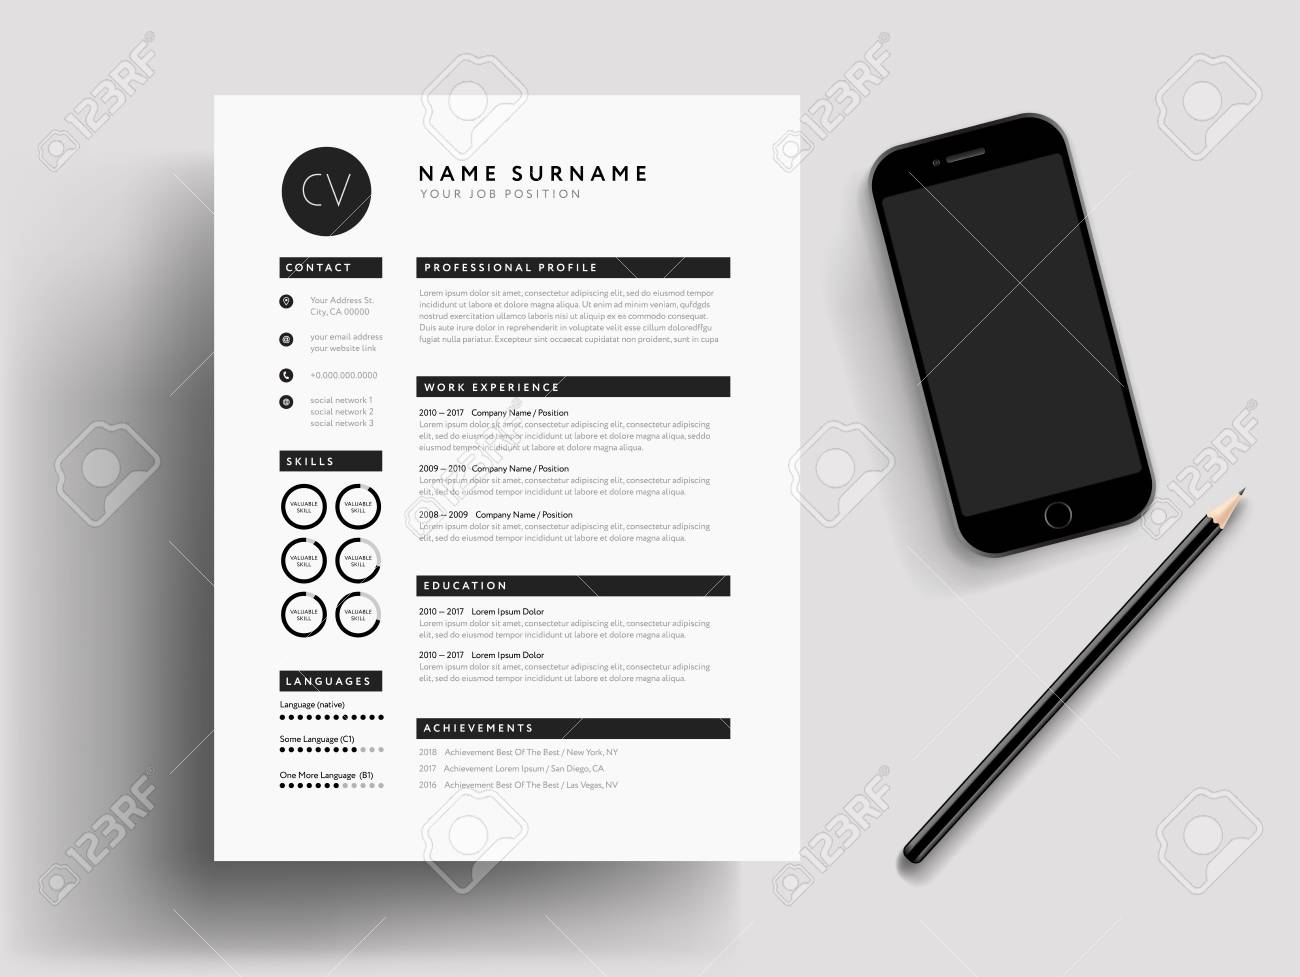 Professional CV Resume Modern Mockup Mobile Phone Pencil Stationary Job Search Illustration